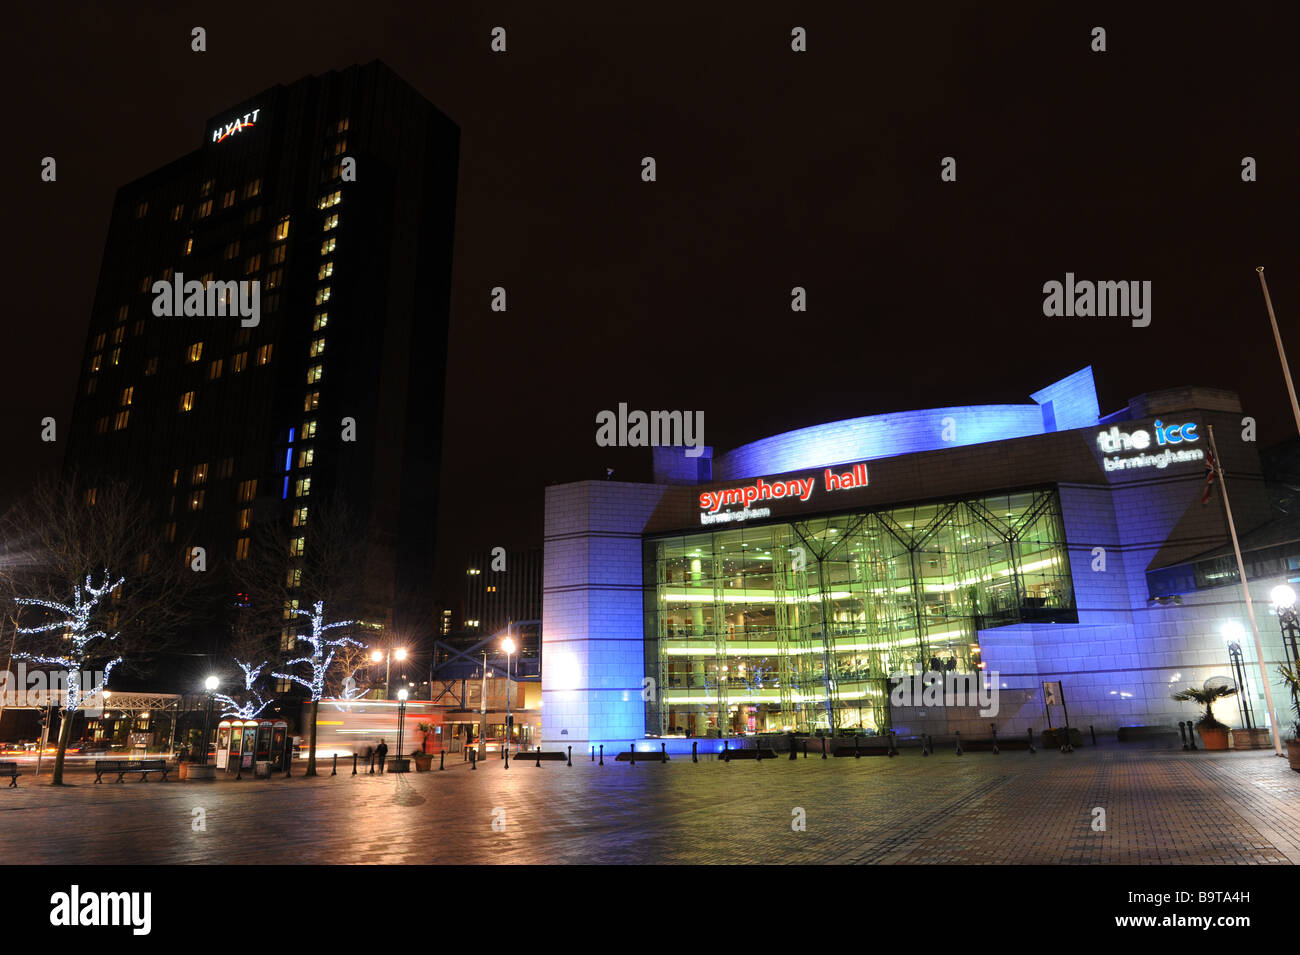 The Birmingham Symphony Hall and ICC with Hyatt Hotel in Centenary Square at night England Uk Stock Photo